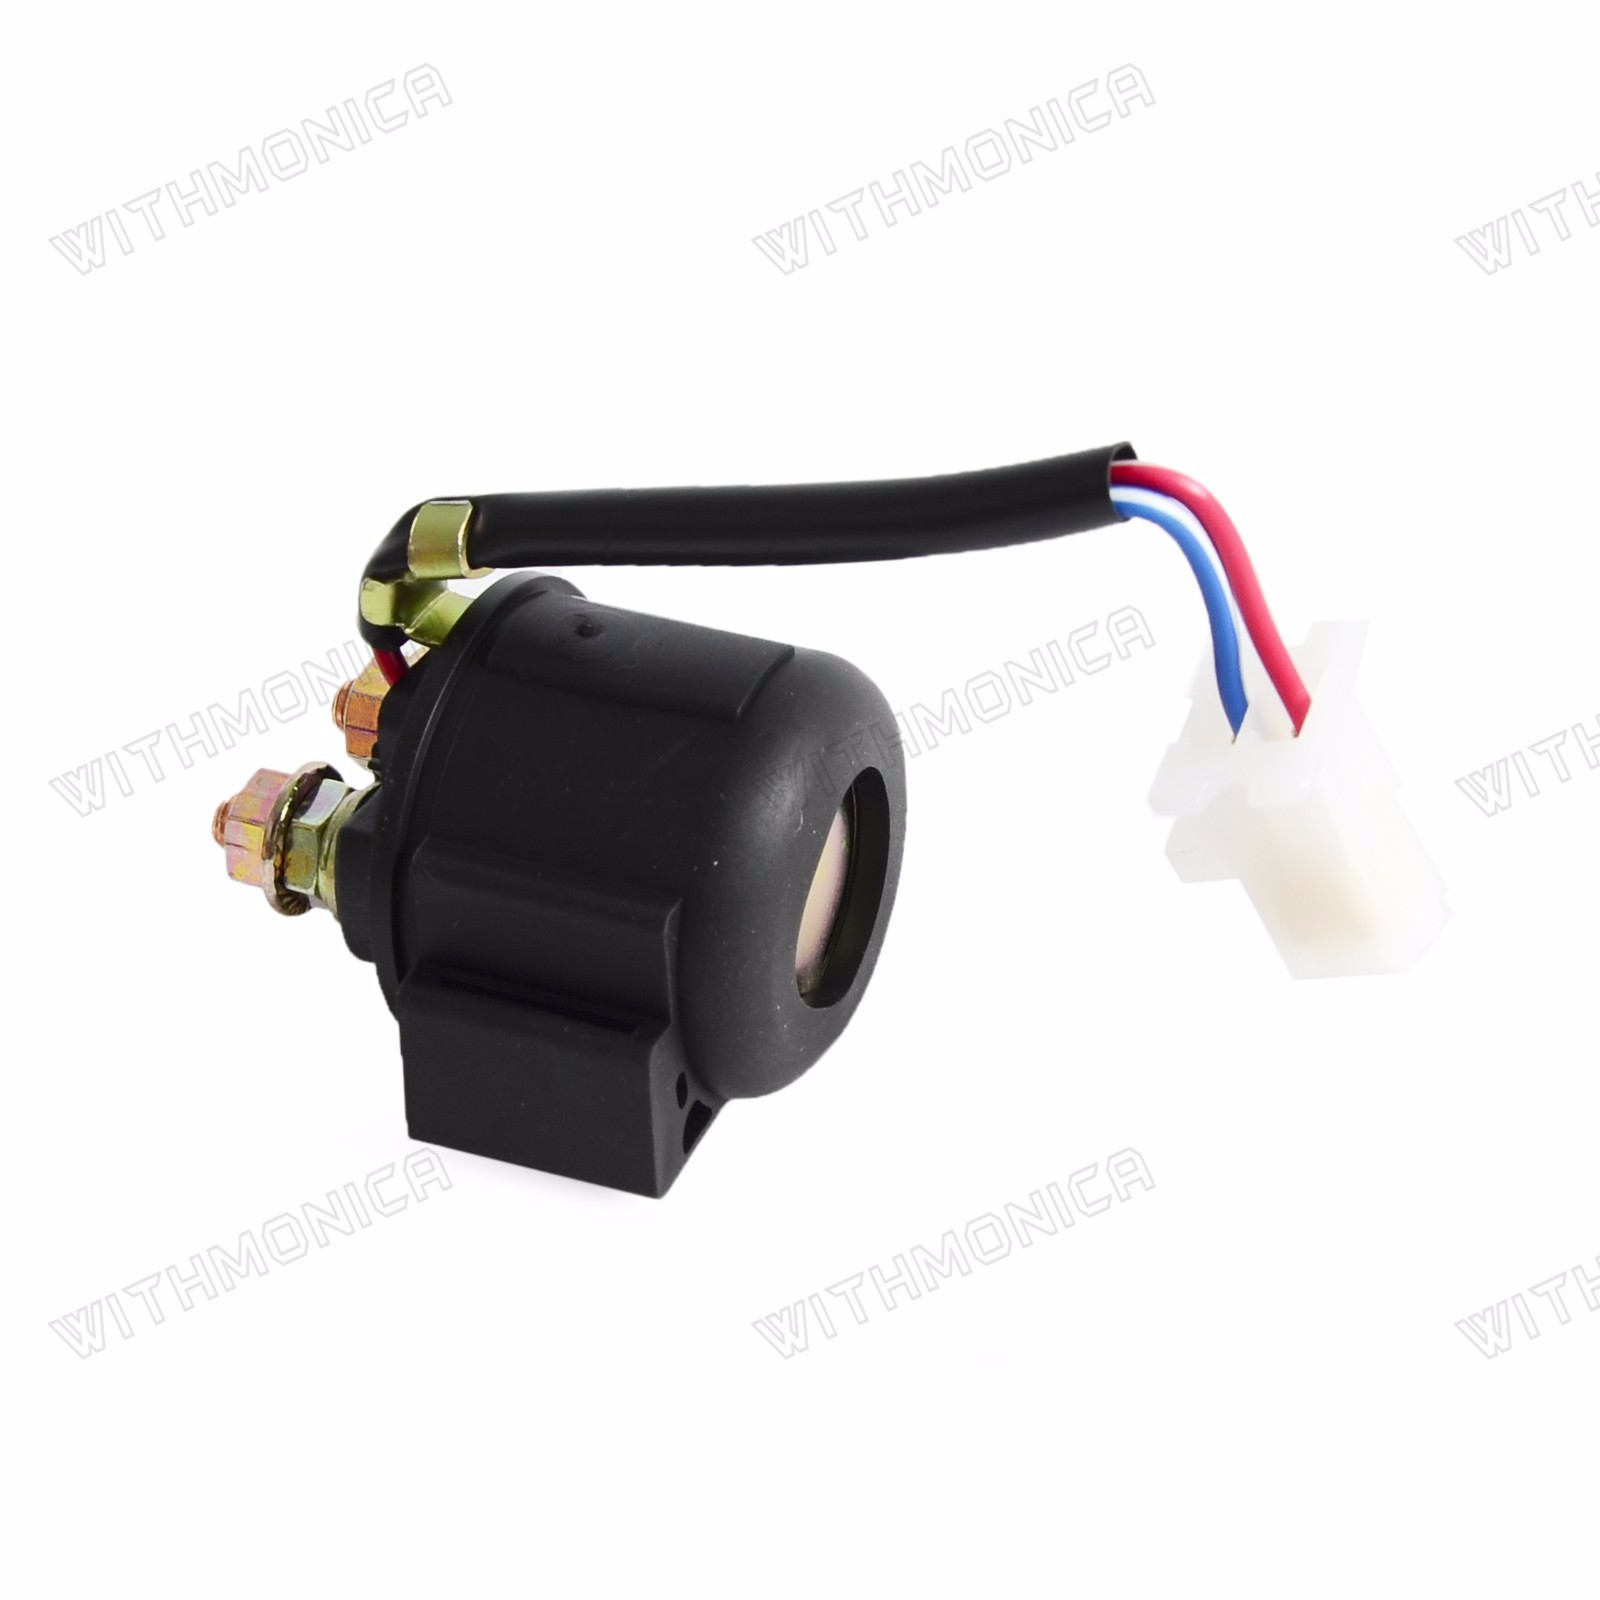 Starter Solenoid Relay Fits For Yamaha Warrior 350 Yfm350 1987-2003 Atv New